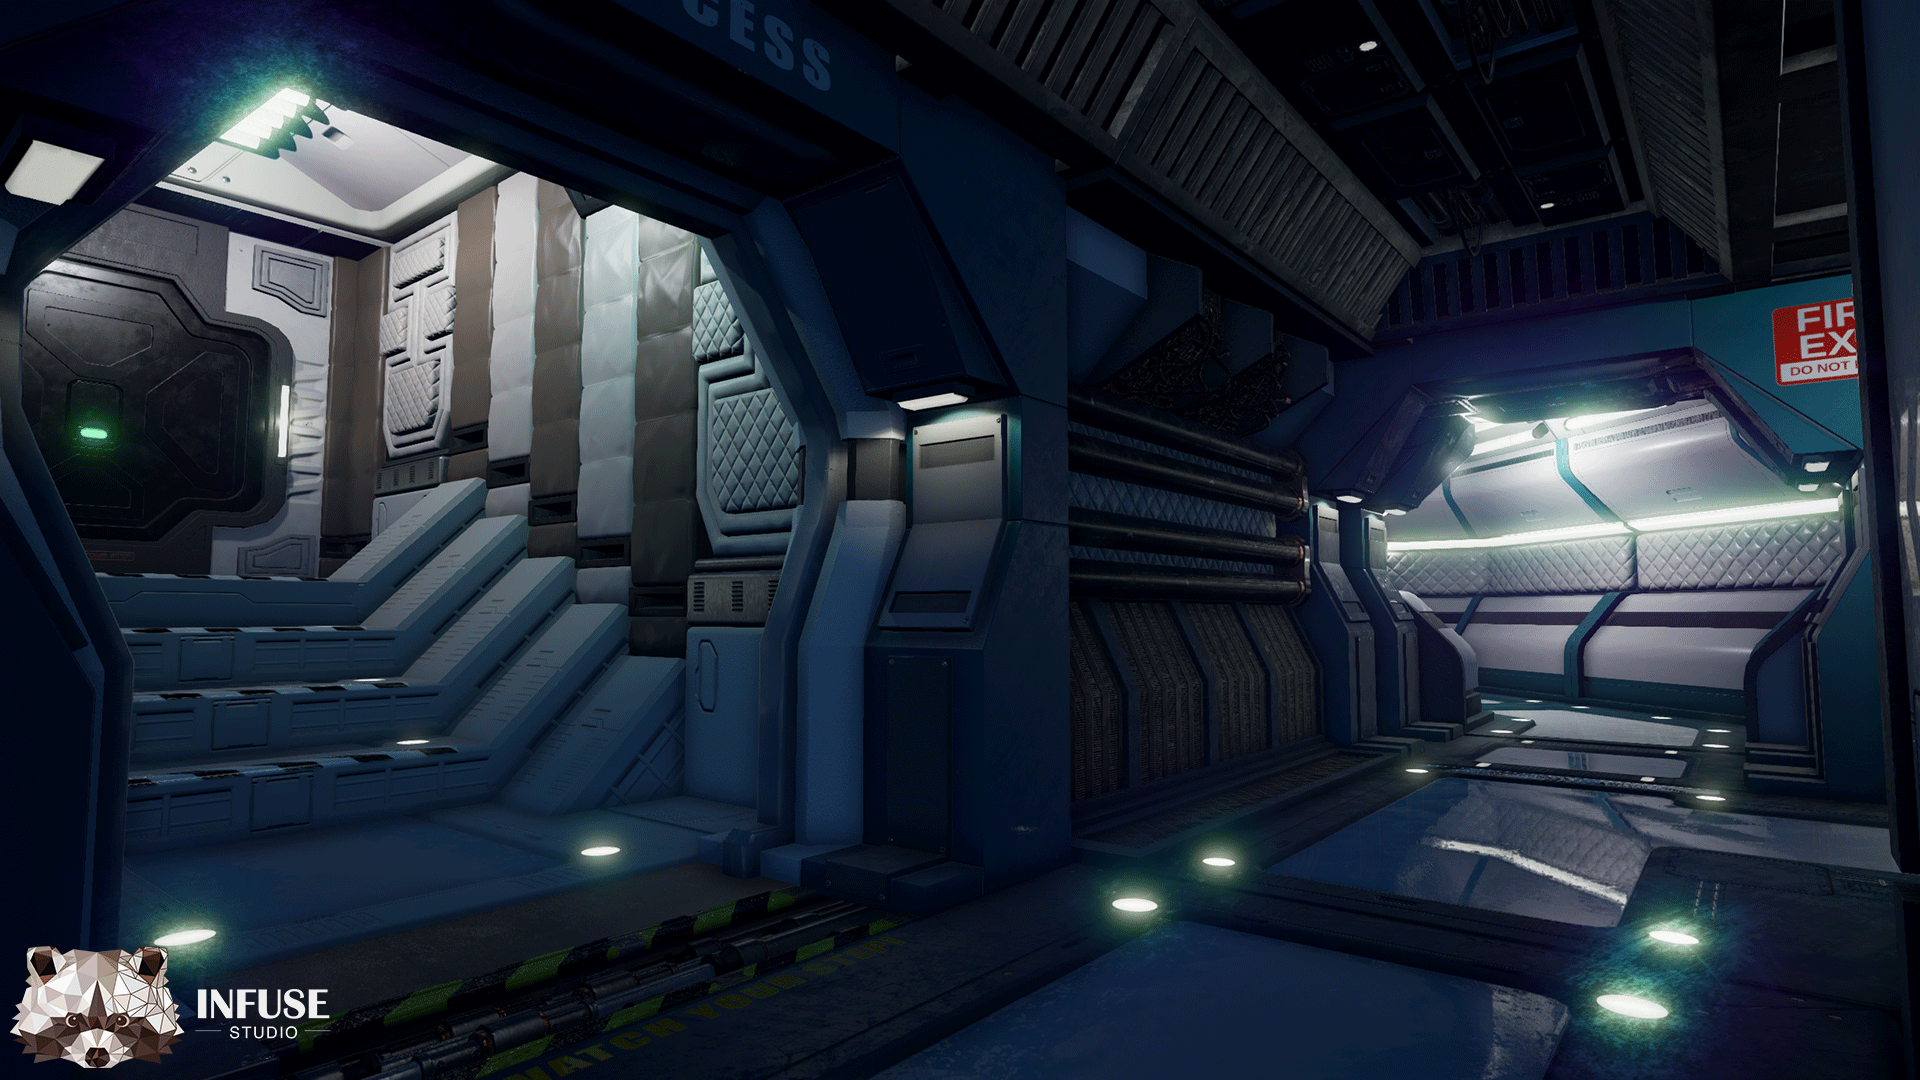 Retro Space Station By Infuse Studio In Environments Ue4